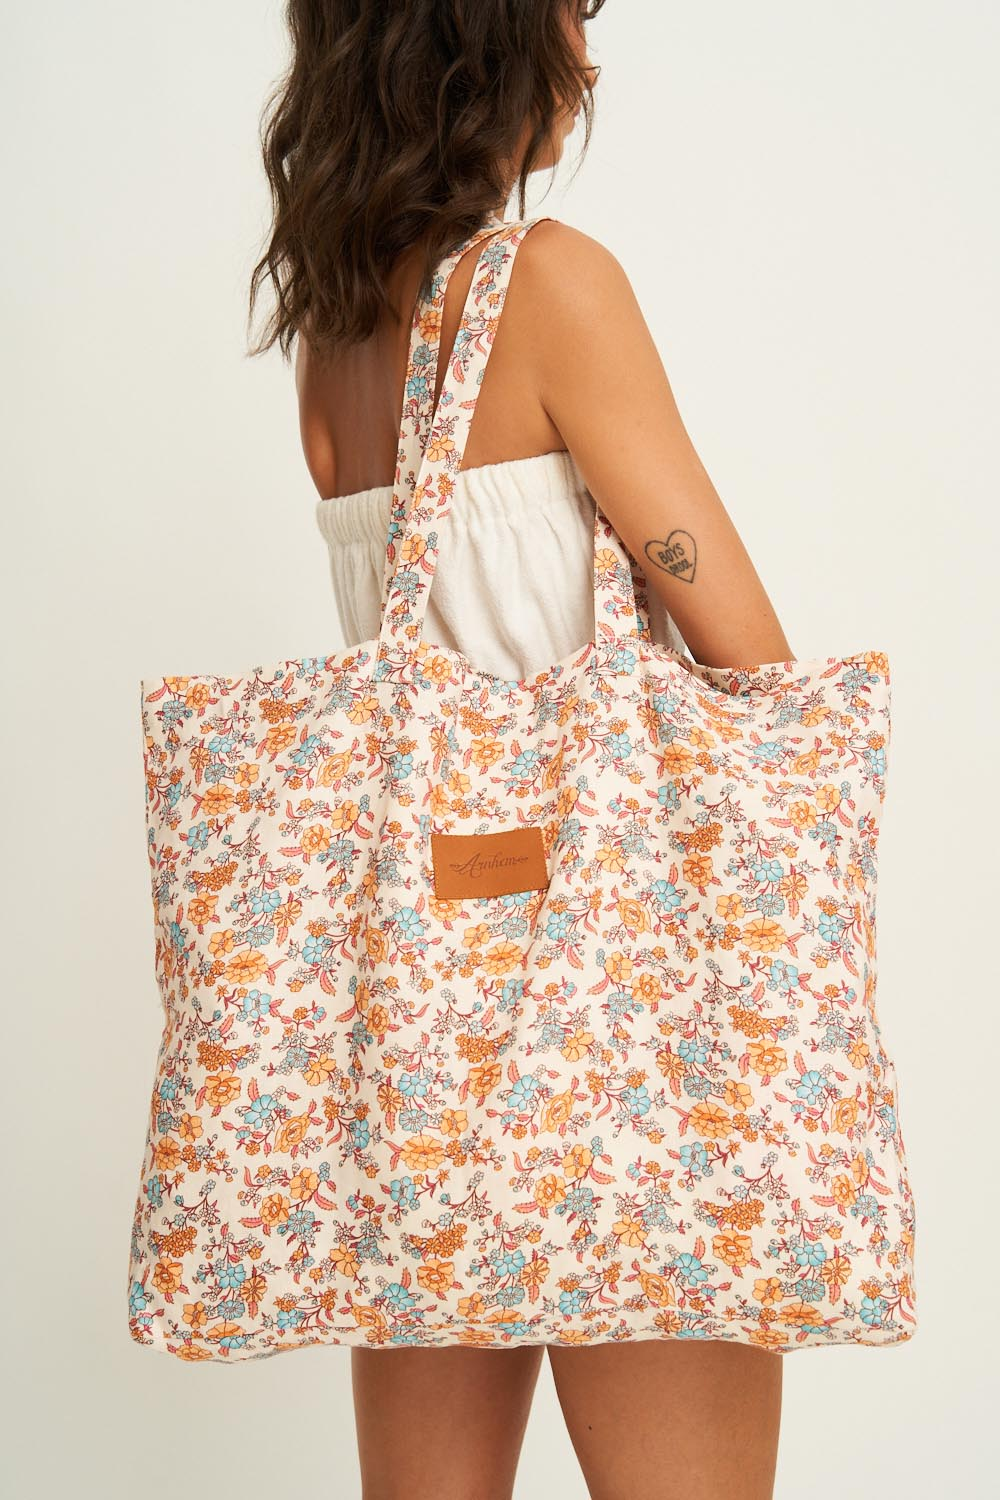 Honey Tote in Coconut Cream